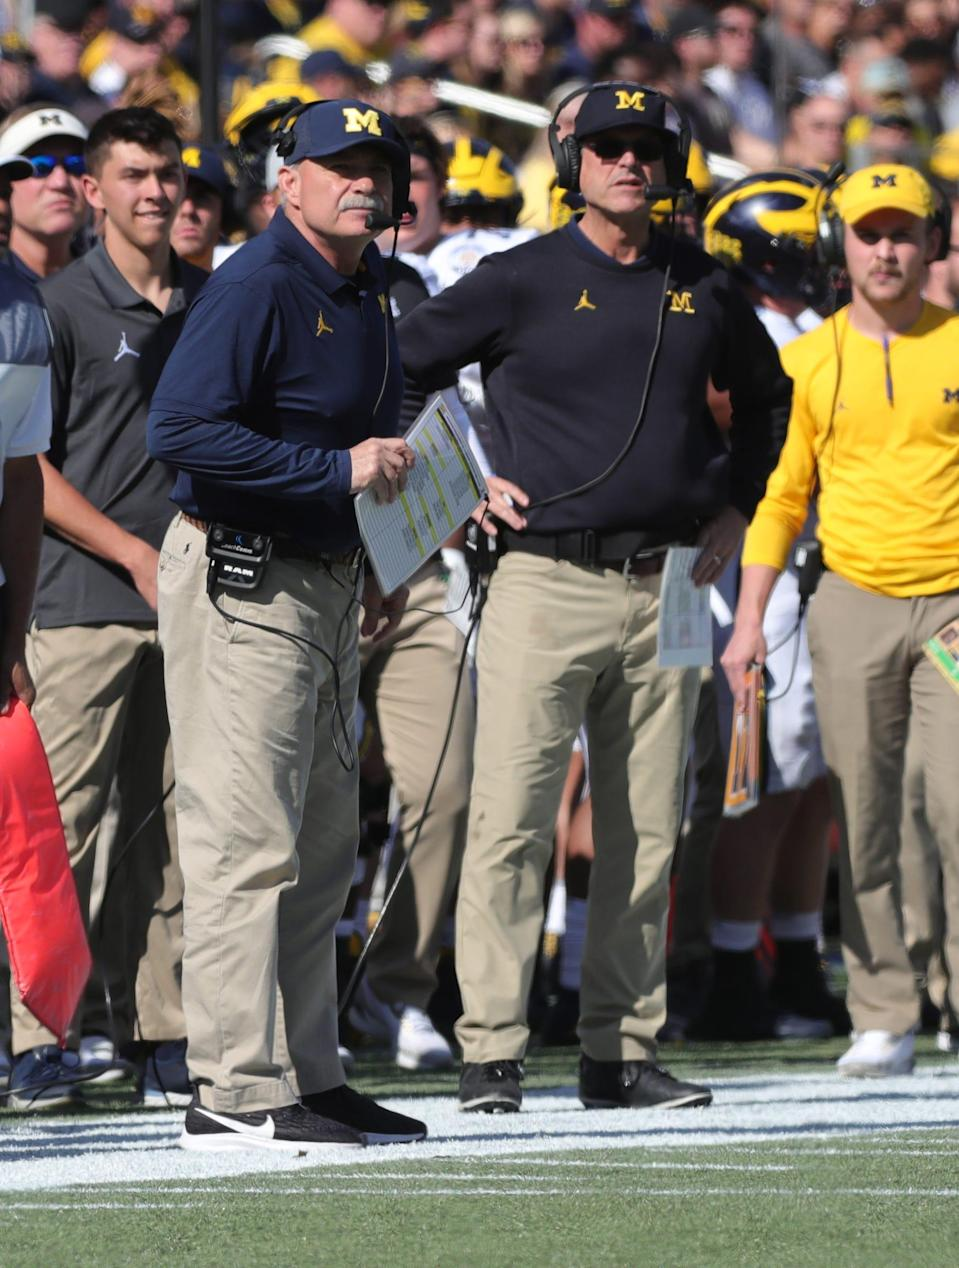 Michigan defensive coordinator Don Brown, left, and coach Jim Harbaugh, right, during the first half of the Citrus Bowl, Wednesday, Jan. 1, 2020 at Camping World Stadium in Orlando, Fla.